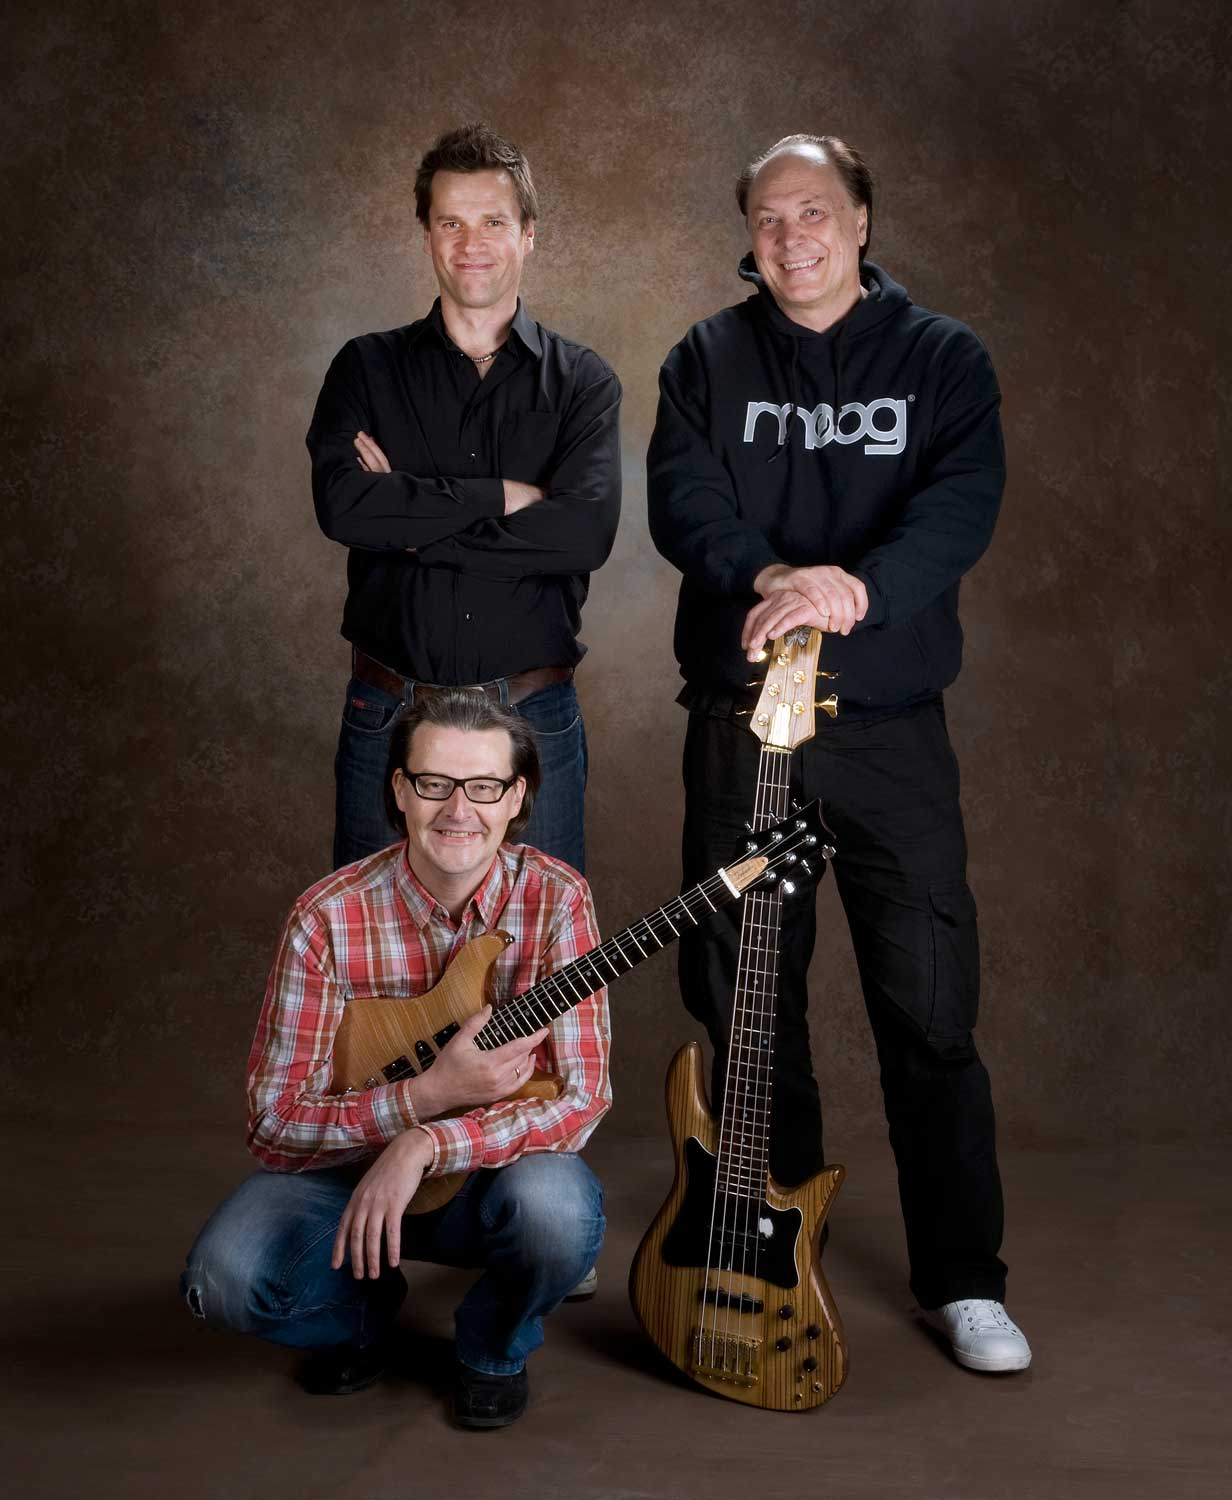 Jan-Olof Strandberg is a member of the new Tommi Varjola Trio